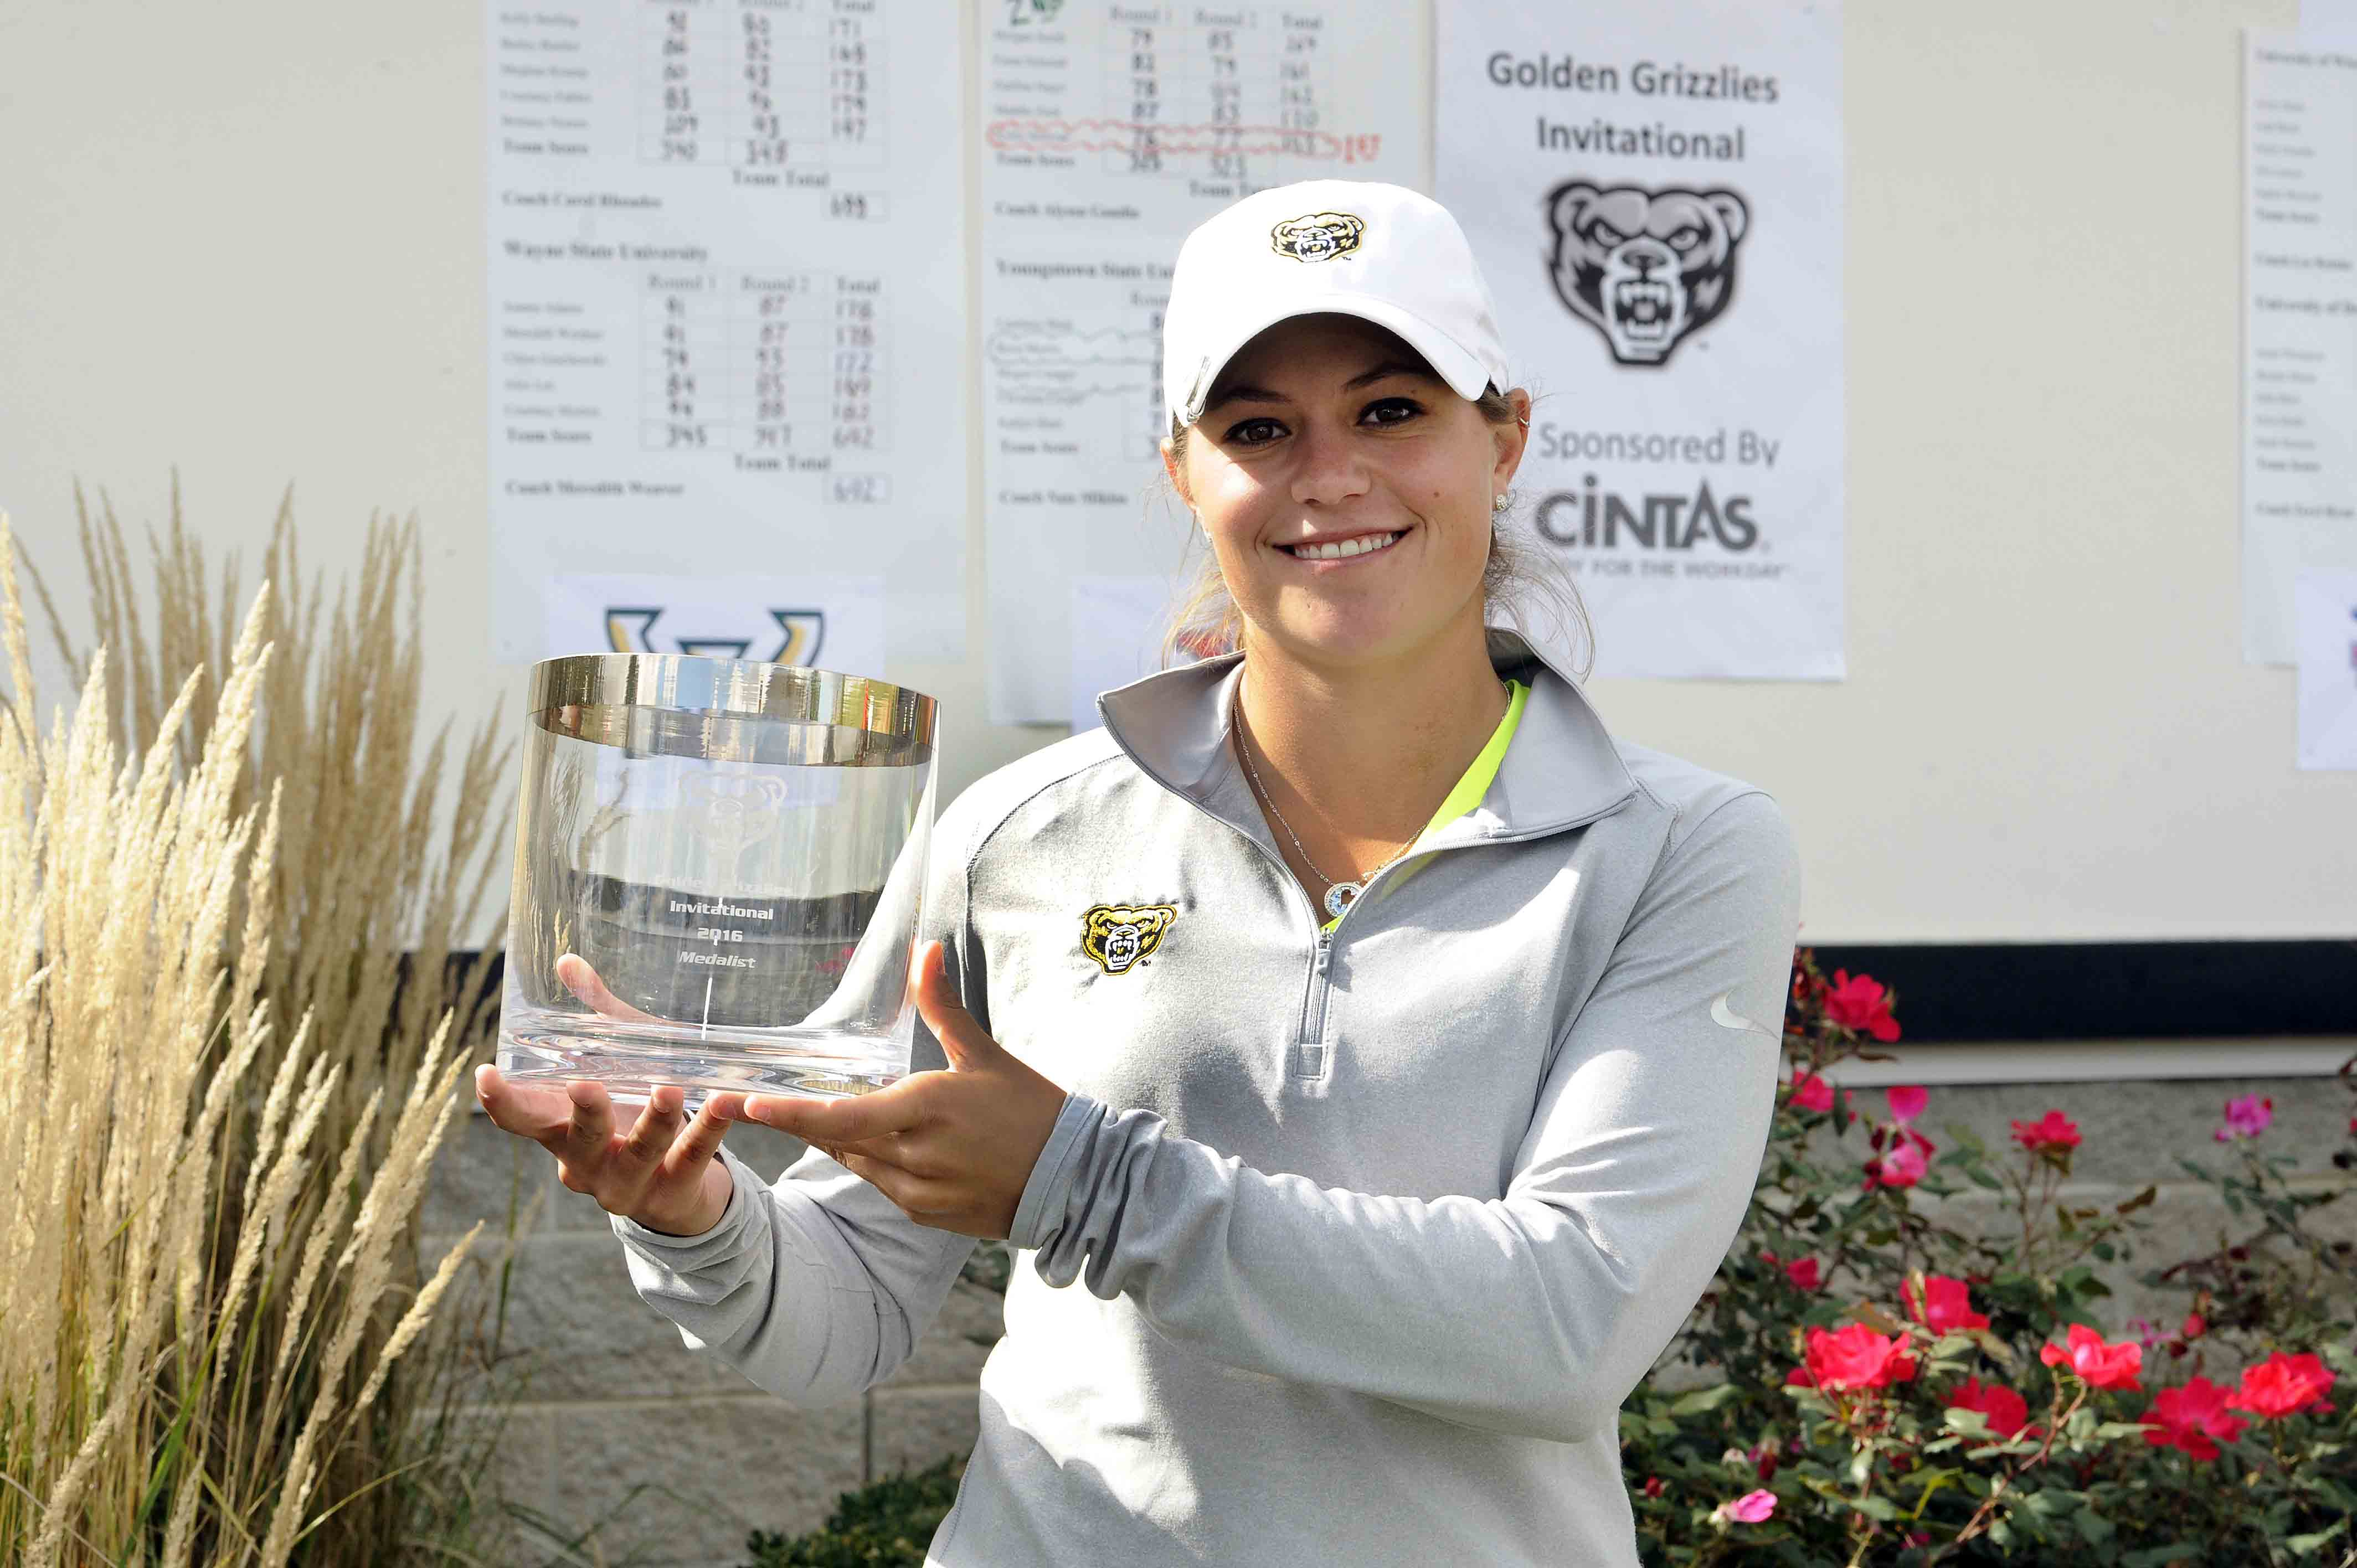 Sophomore Kylee Sullivan grabs first career individual title at the Golden Grizzlies invitational.